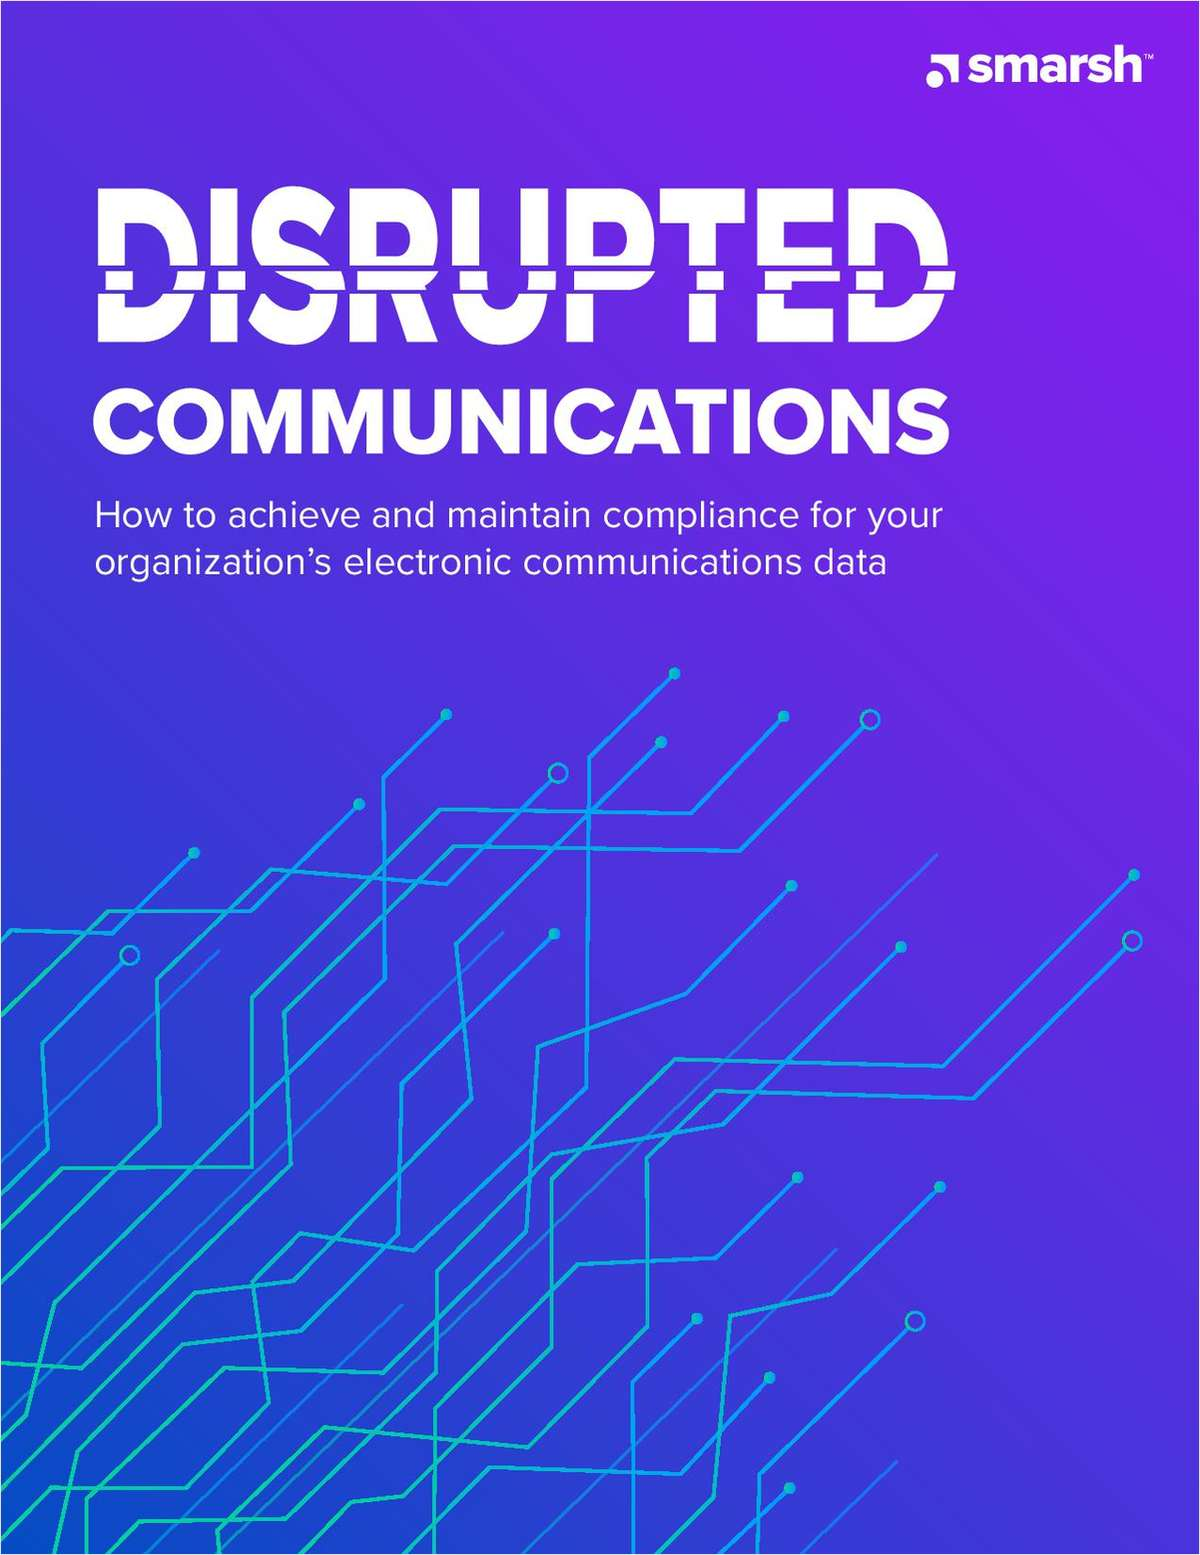 Disrupted Communications: How to achieve and maintain compliance for your organization's electronic communications data